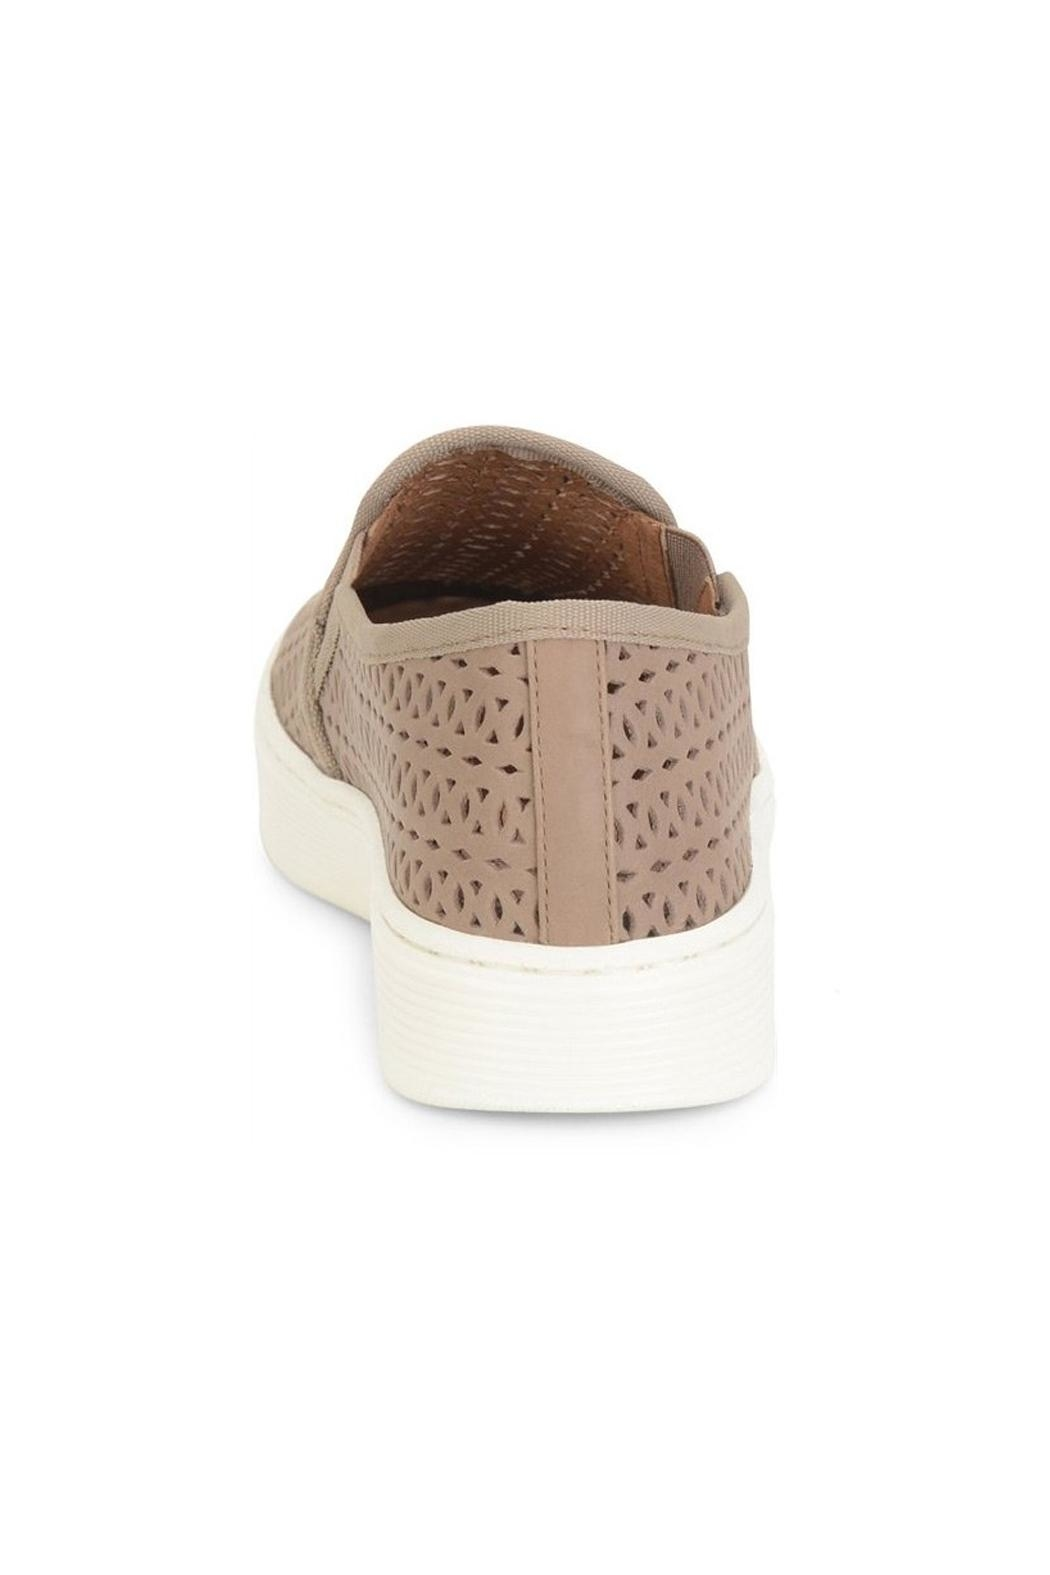 Sofft Beige Perforated Sneaker - Front Full Image